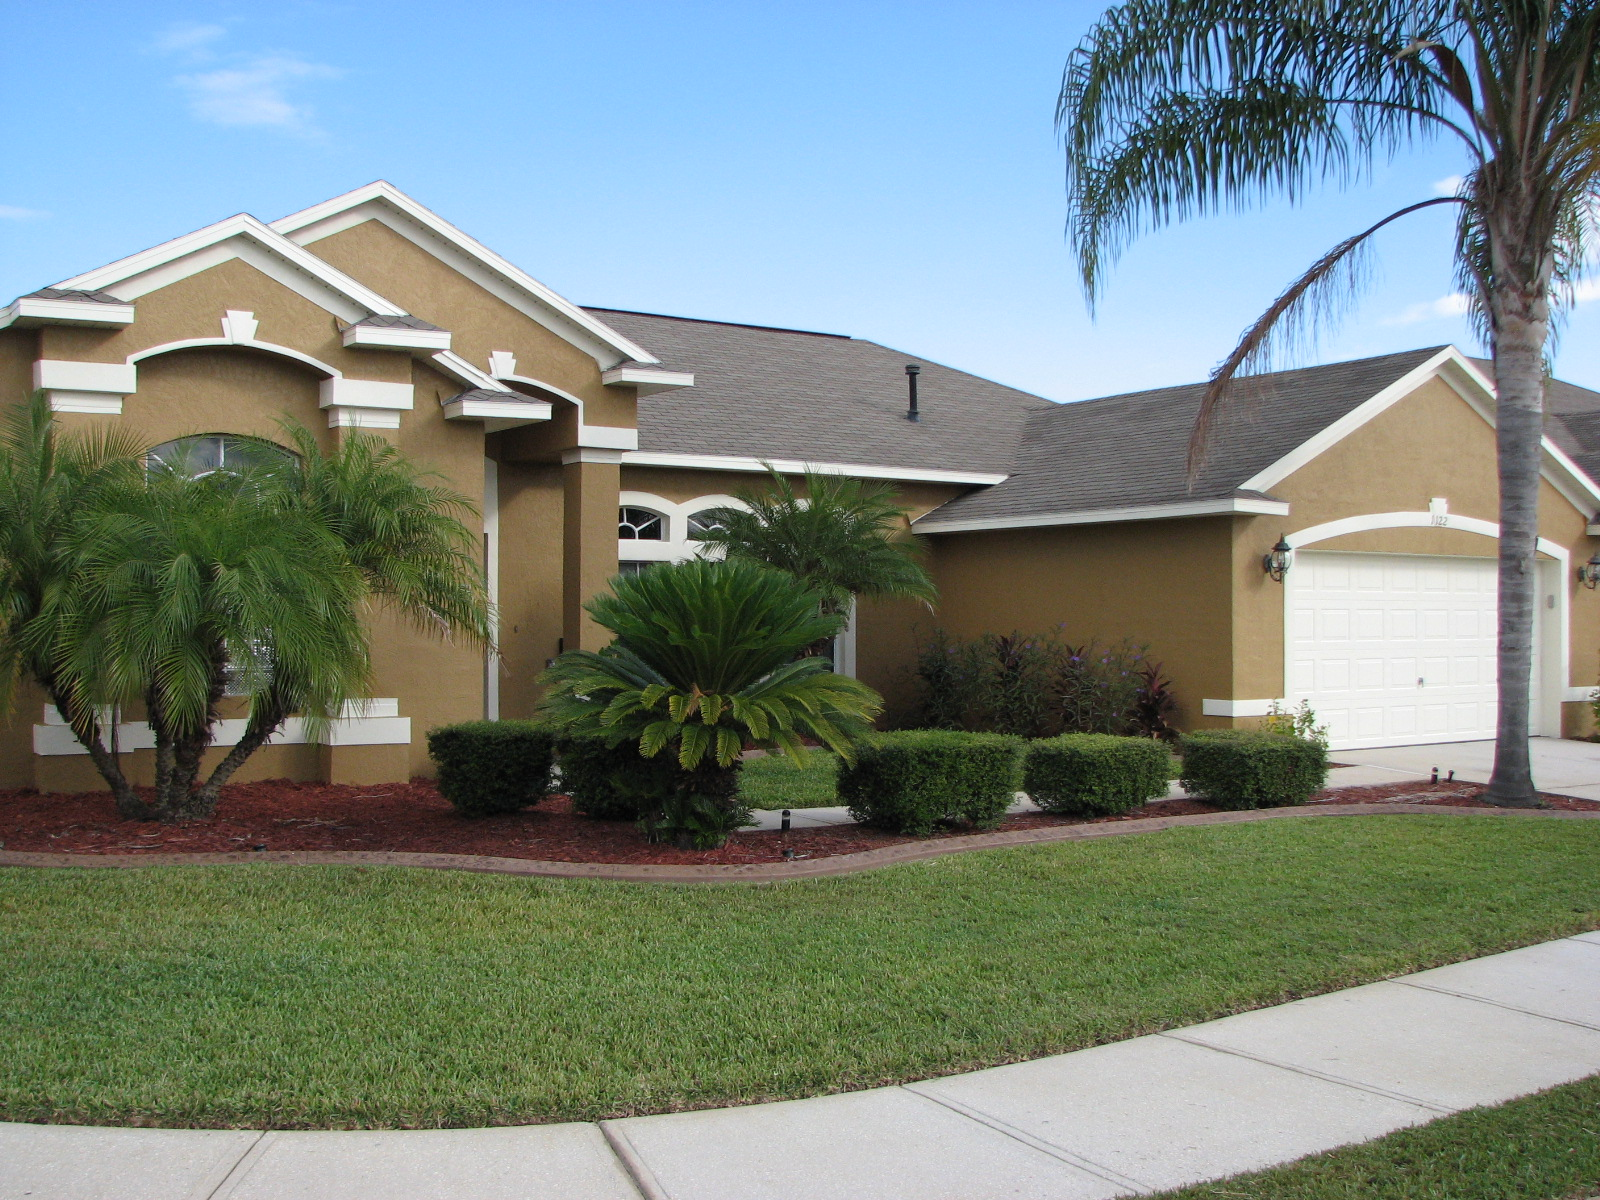 Exterior paint colors for florida homes images - Exterior paint home photos ...